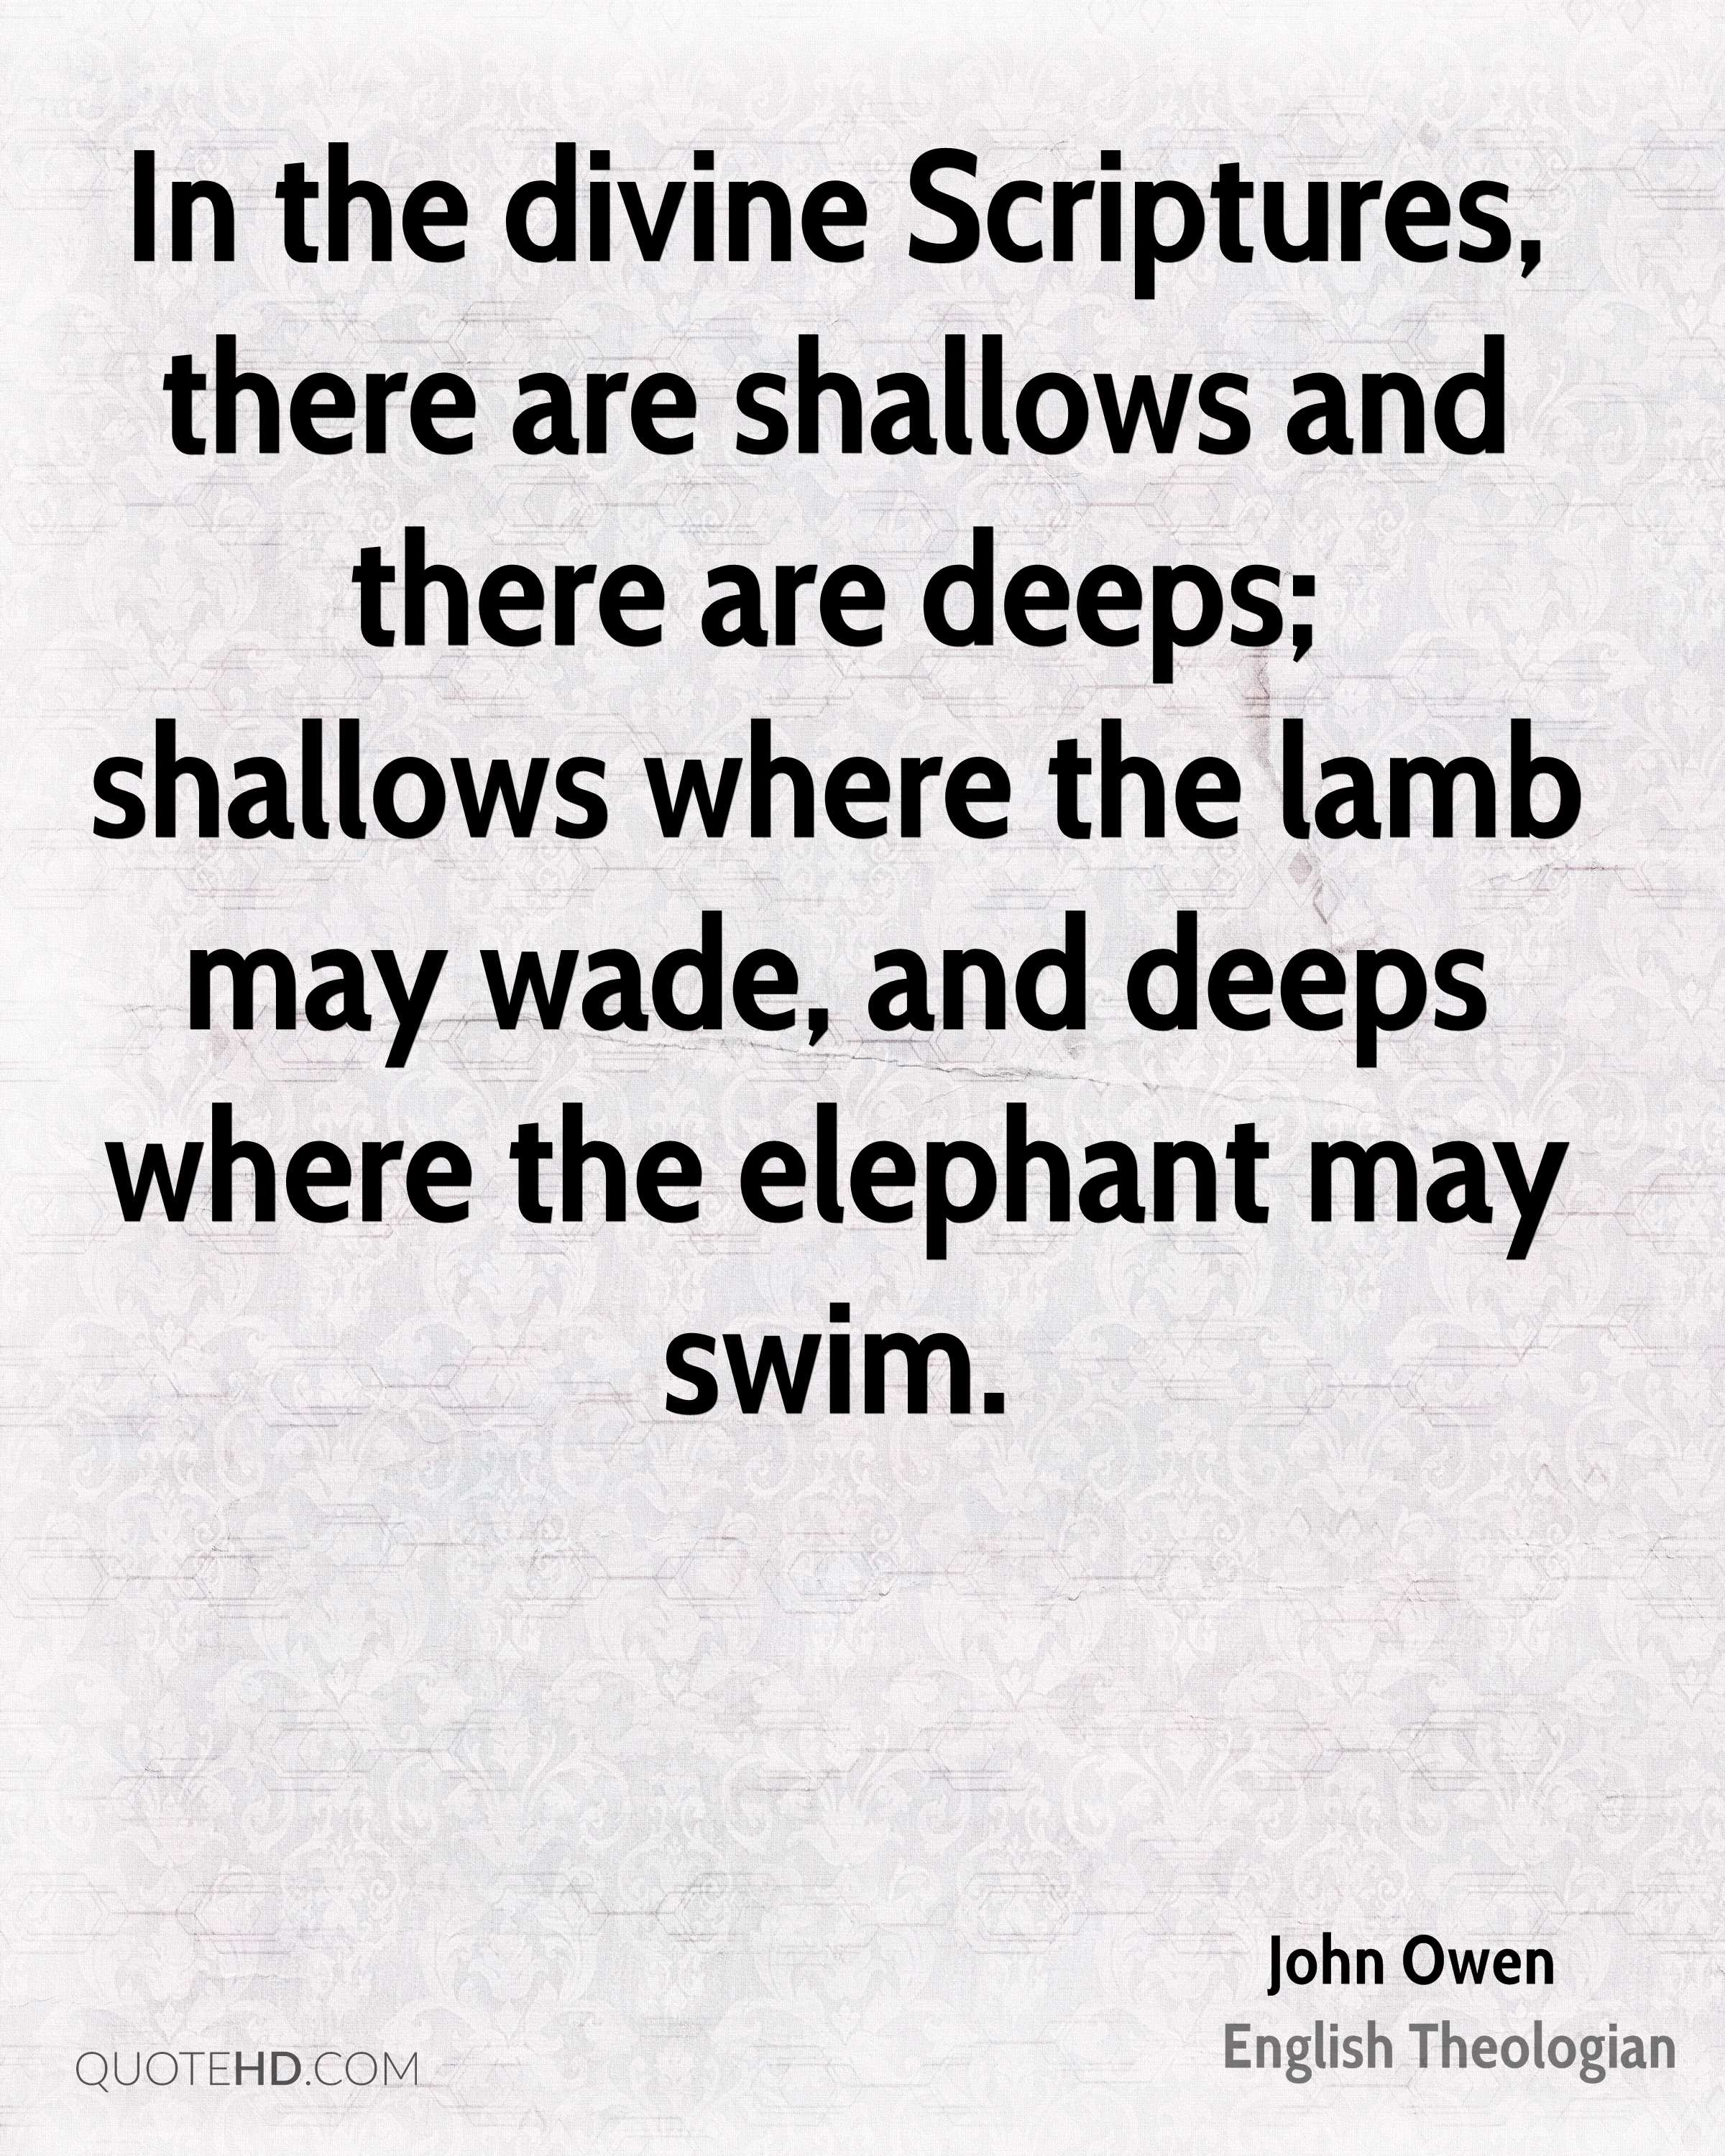 In the divine Scriptures, there are shallows and there are deeps; shallows where the lamb may wade, and deeps where the elephant may swim.